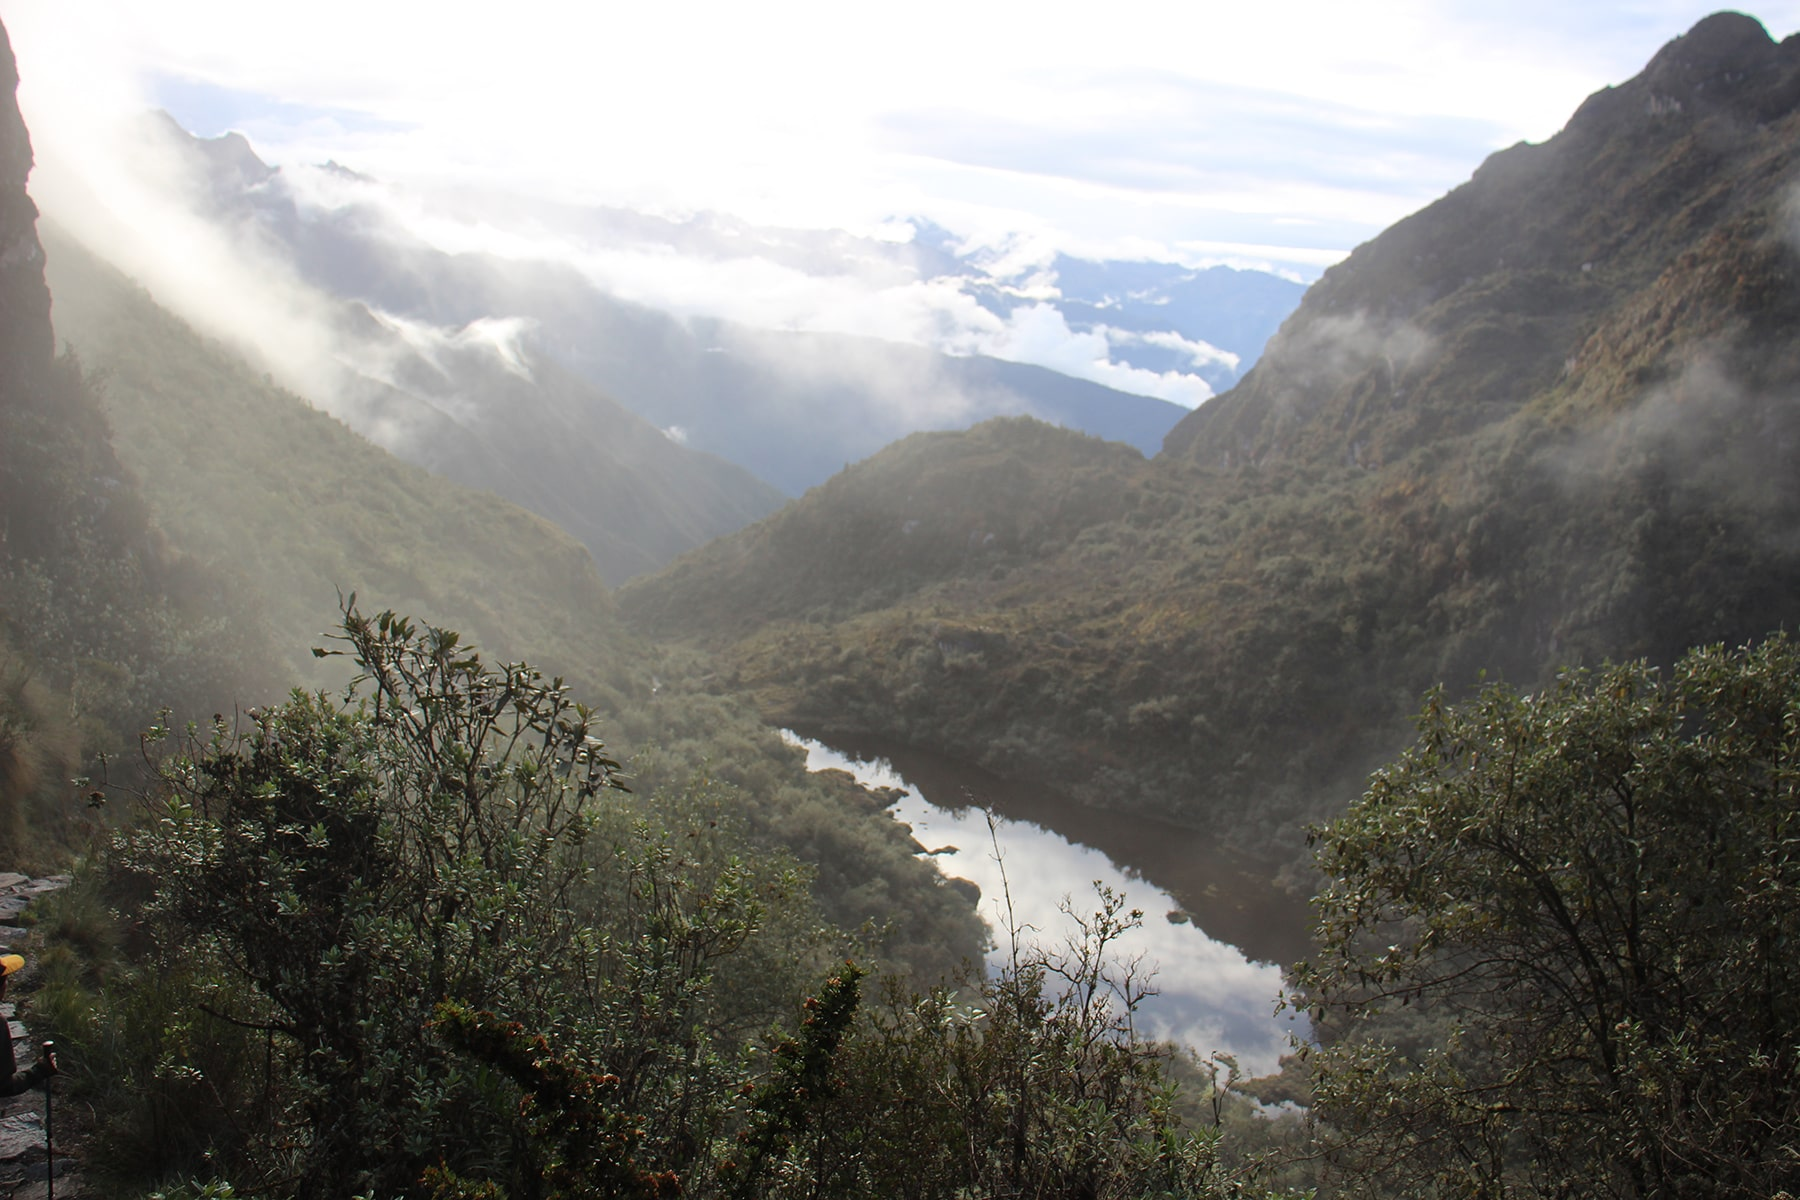 A view in the Inca Trail